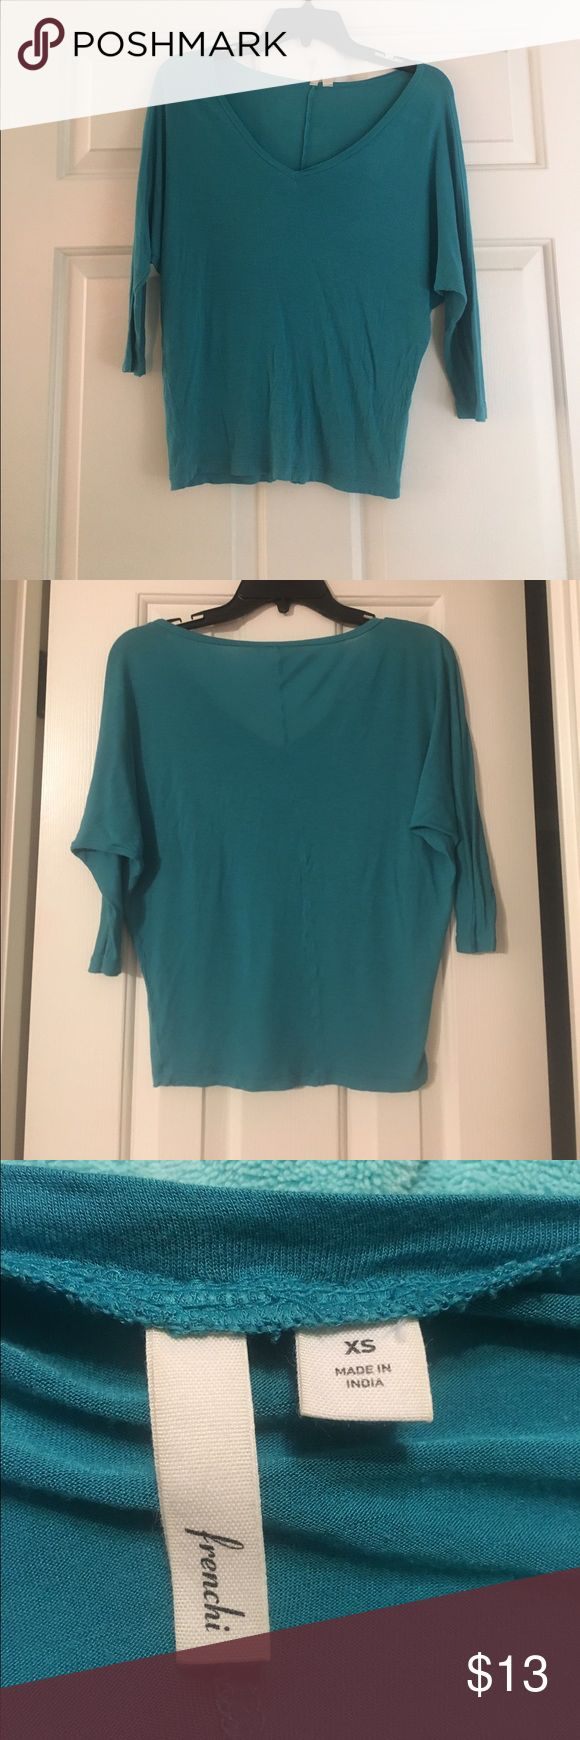 🦃 Sale--Turquoise Top Beautiful blue/green slouchy top. Size XS, fits like a small. Perfect for those in-between weather days. Frenchi Tops